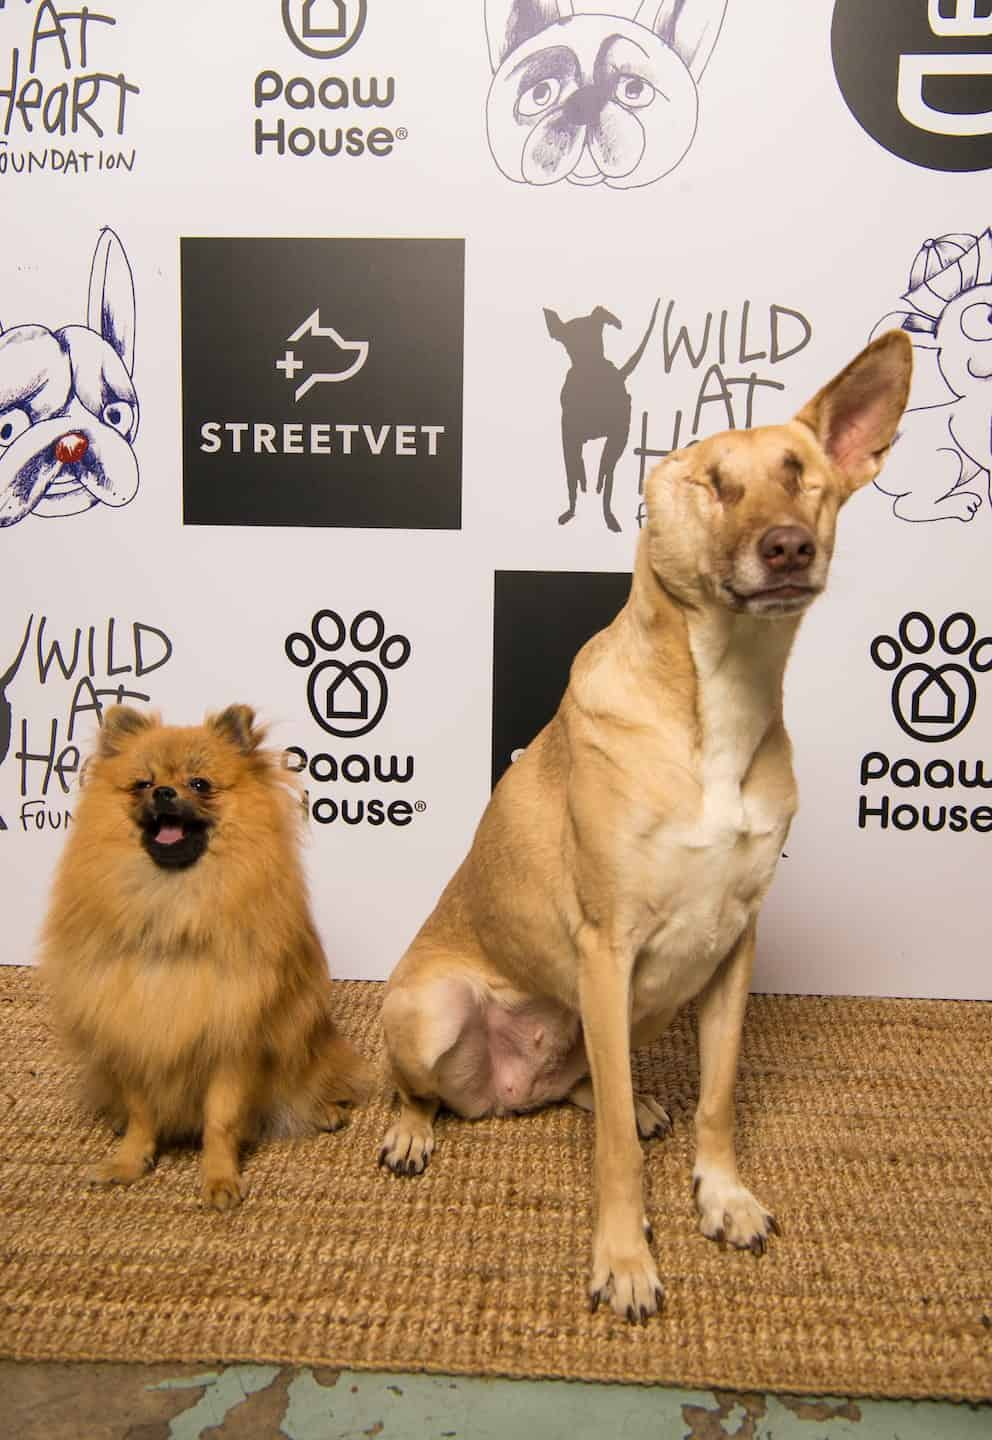 PAAW House X Wild at Heart Foundation party